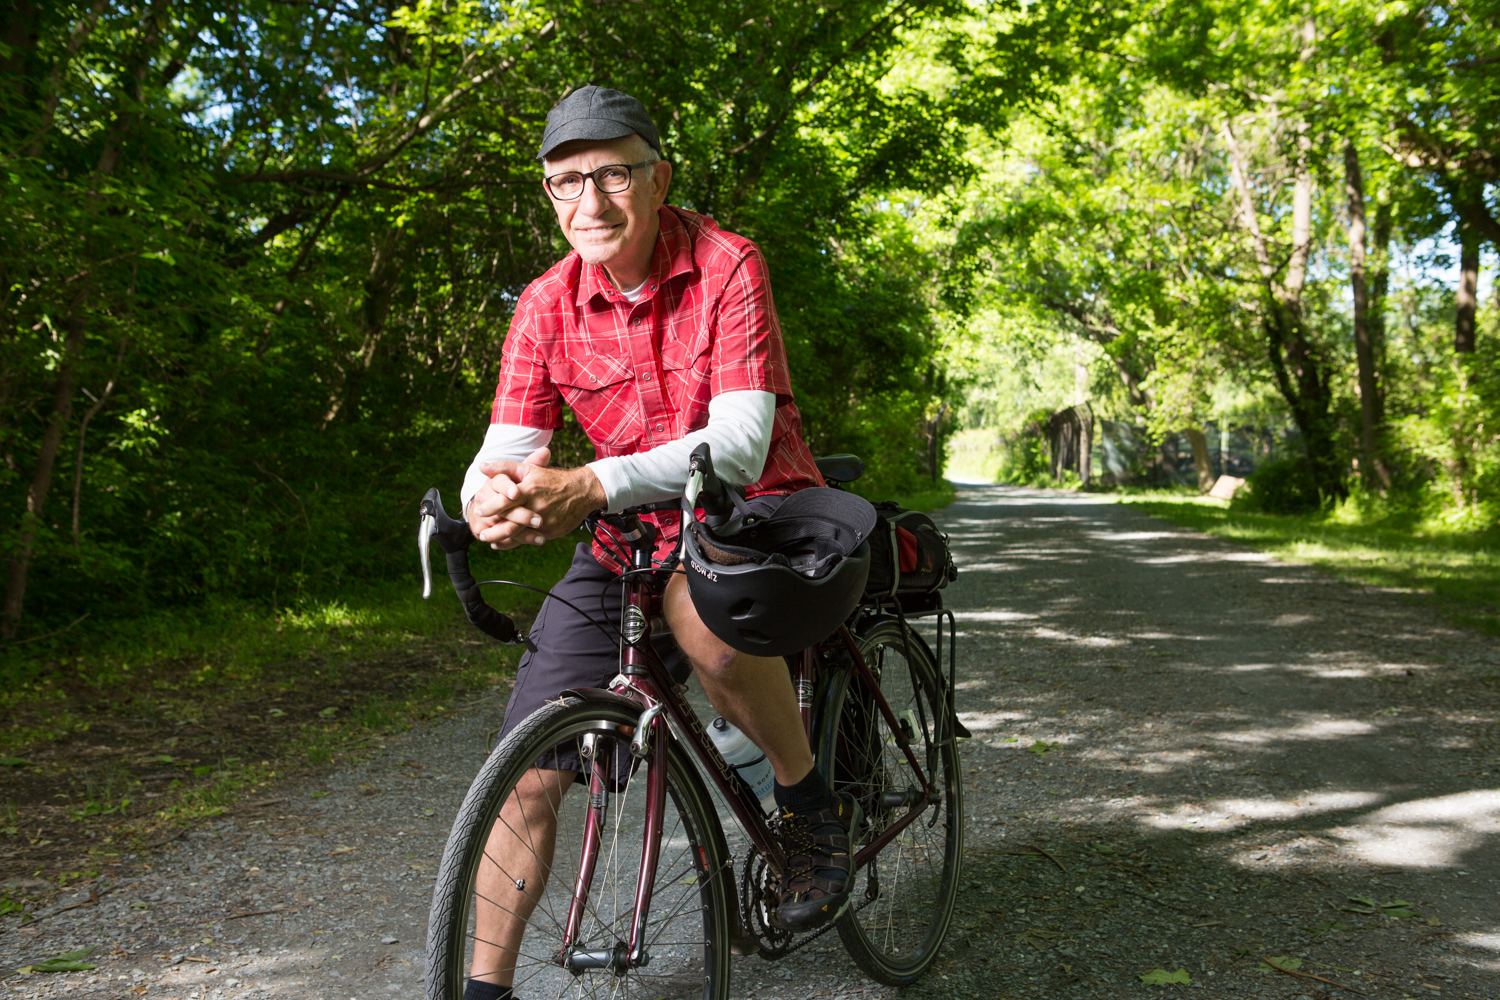 Wayne Clark, AARP, Eric Kruszewski, editorial photographer, Washington, D.C., Maryland, bicycle, bicycling, portraits